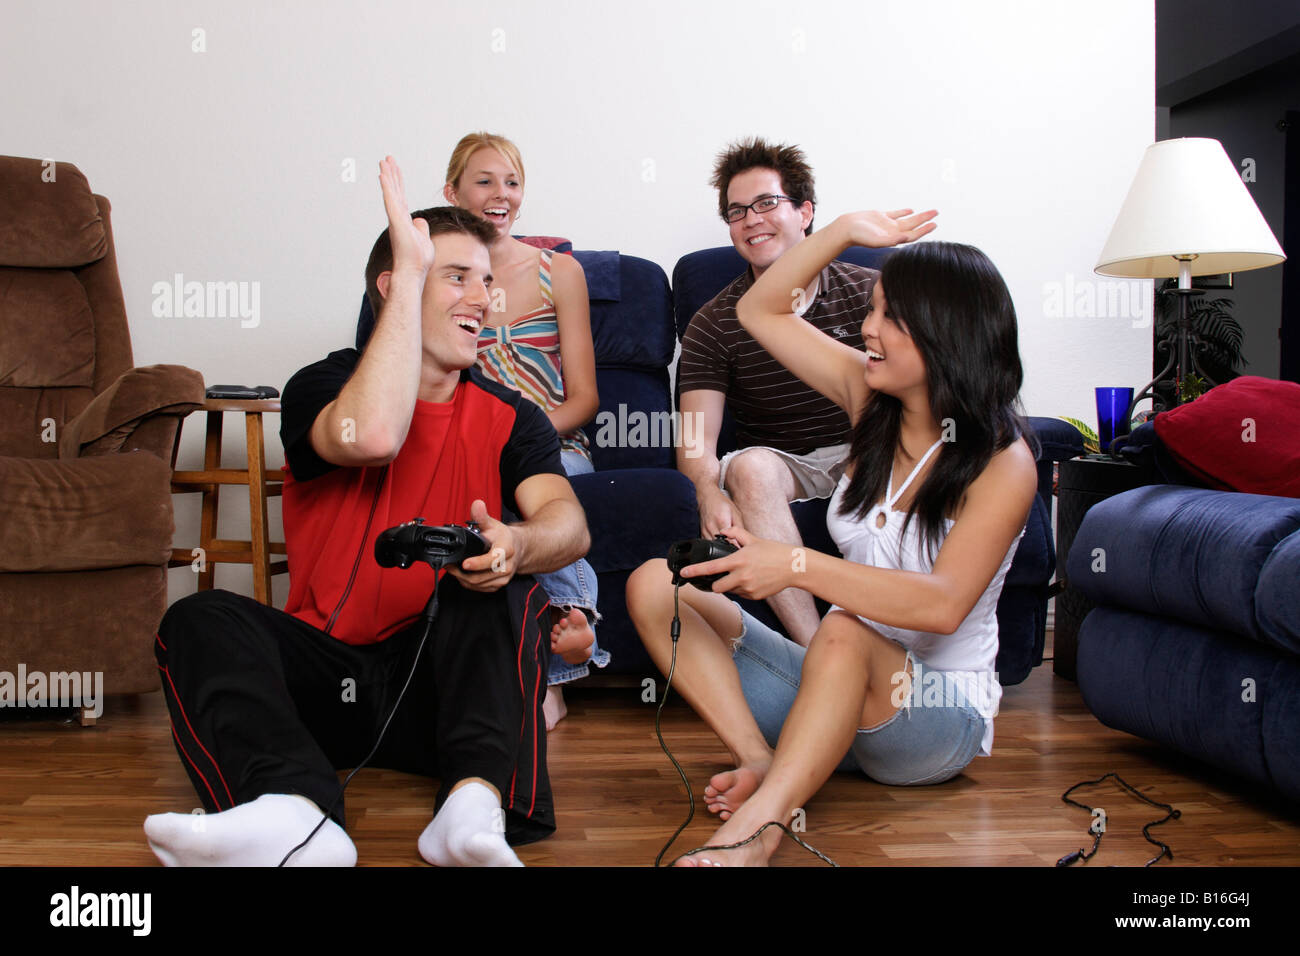 Stock Photograph of four teens having fun playing video games - Stock Image